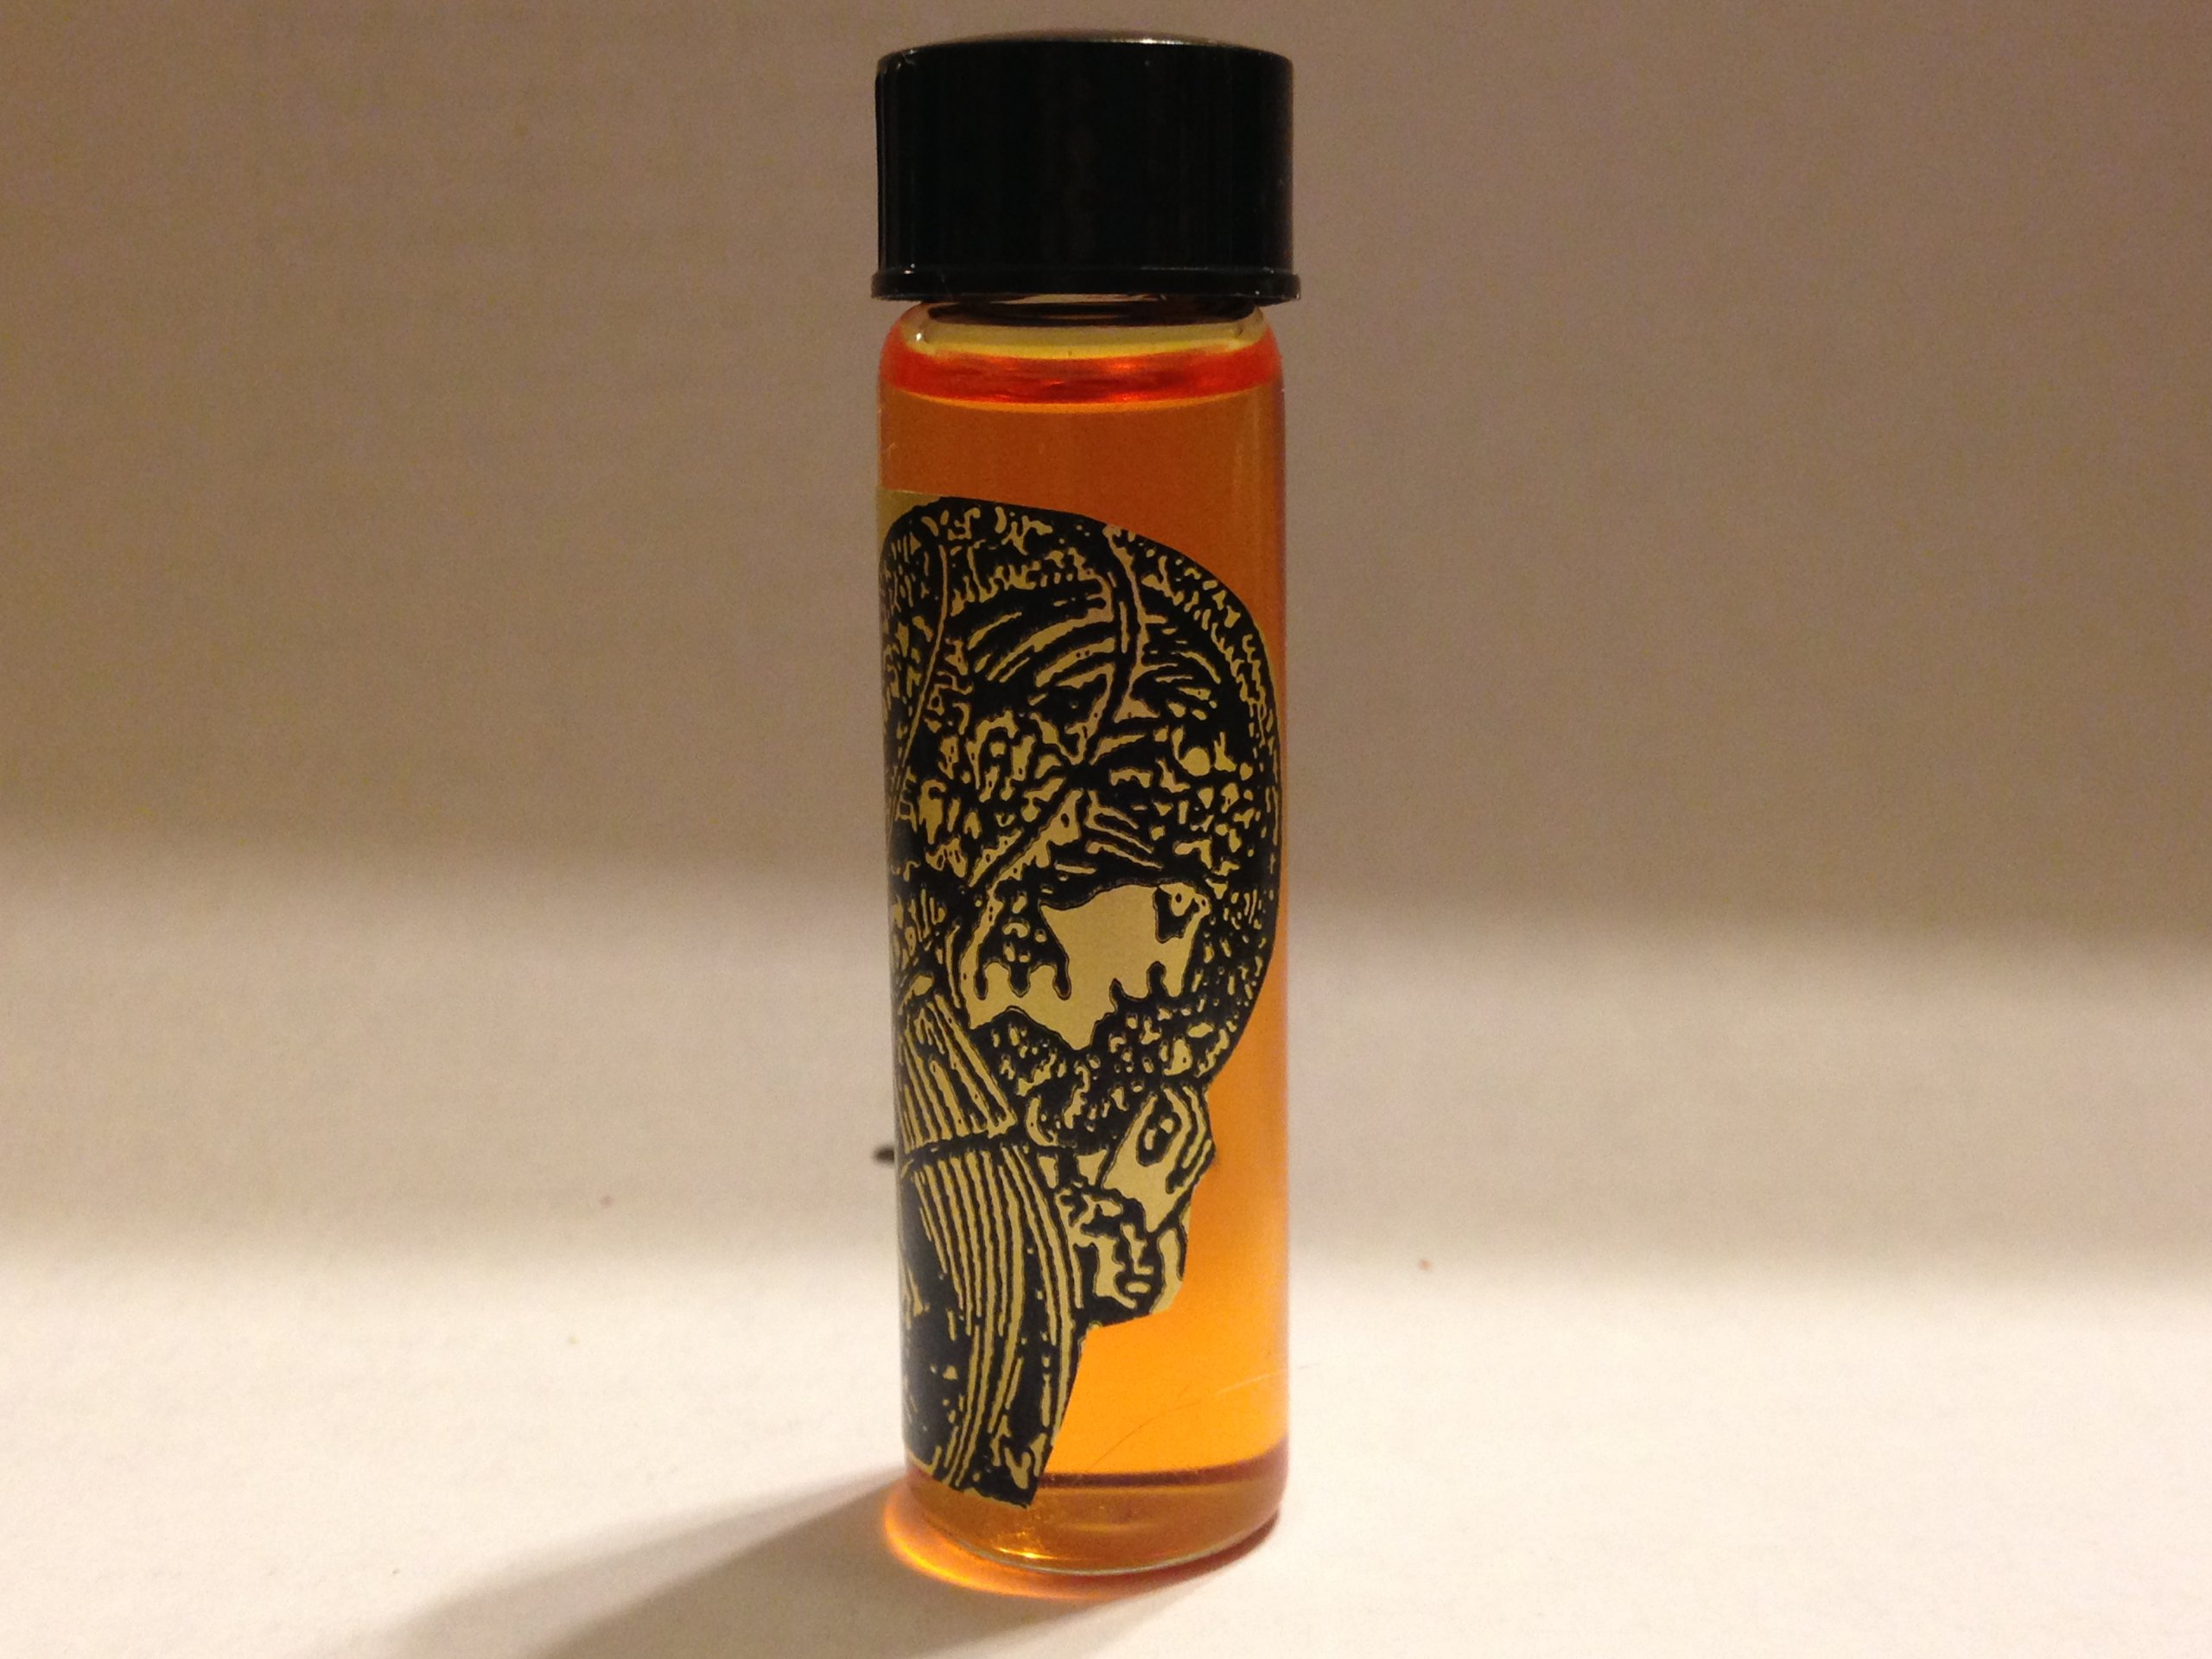 Mojo, Scented Magickal Oil 2 Dram Bottle. This lucky formula draws all positive energy to the spell of the spell-caster. It is an all-purpose formula.